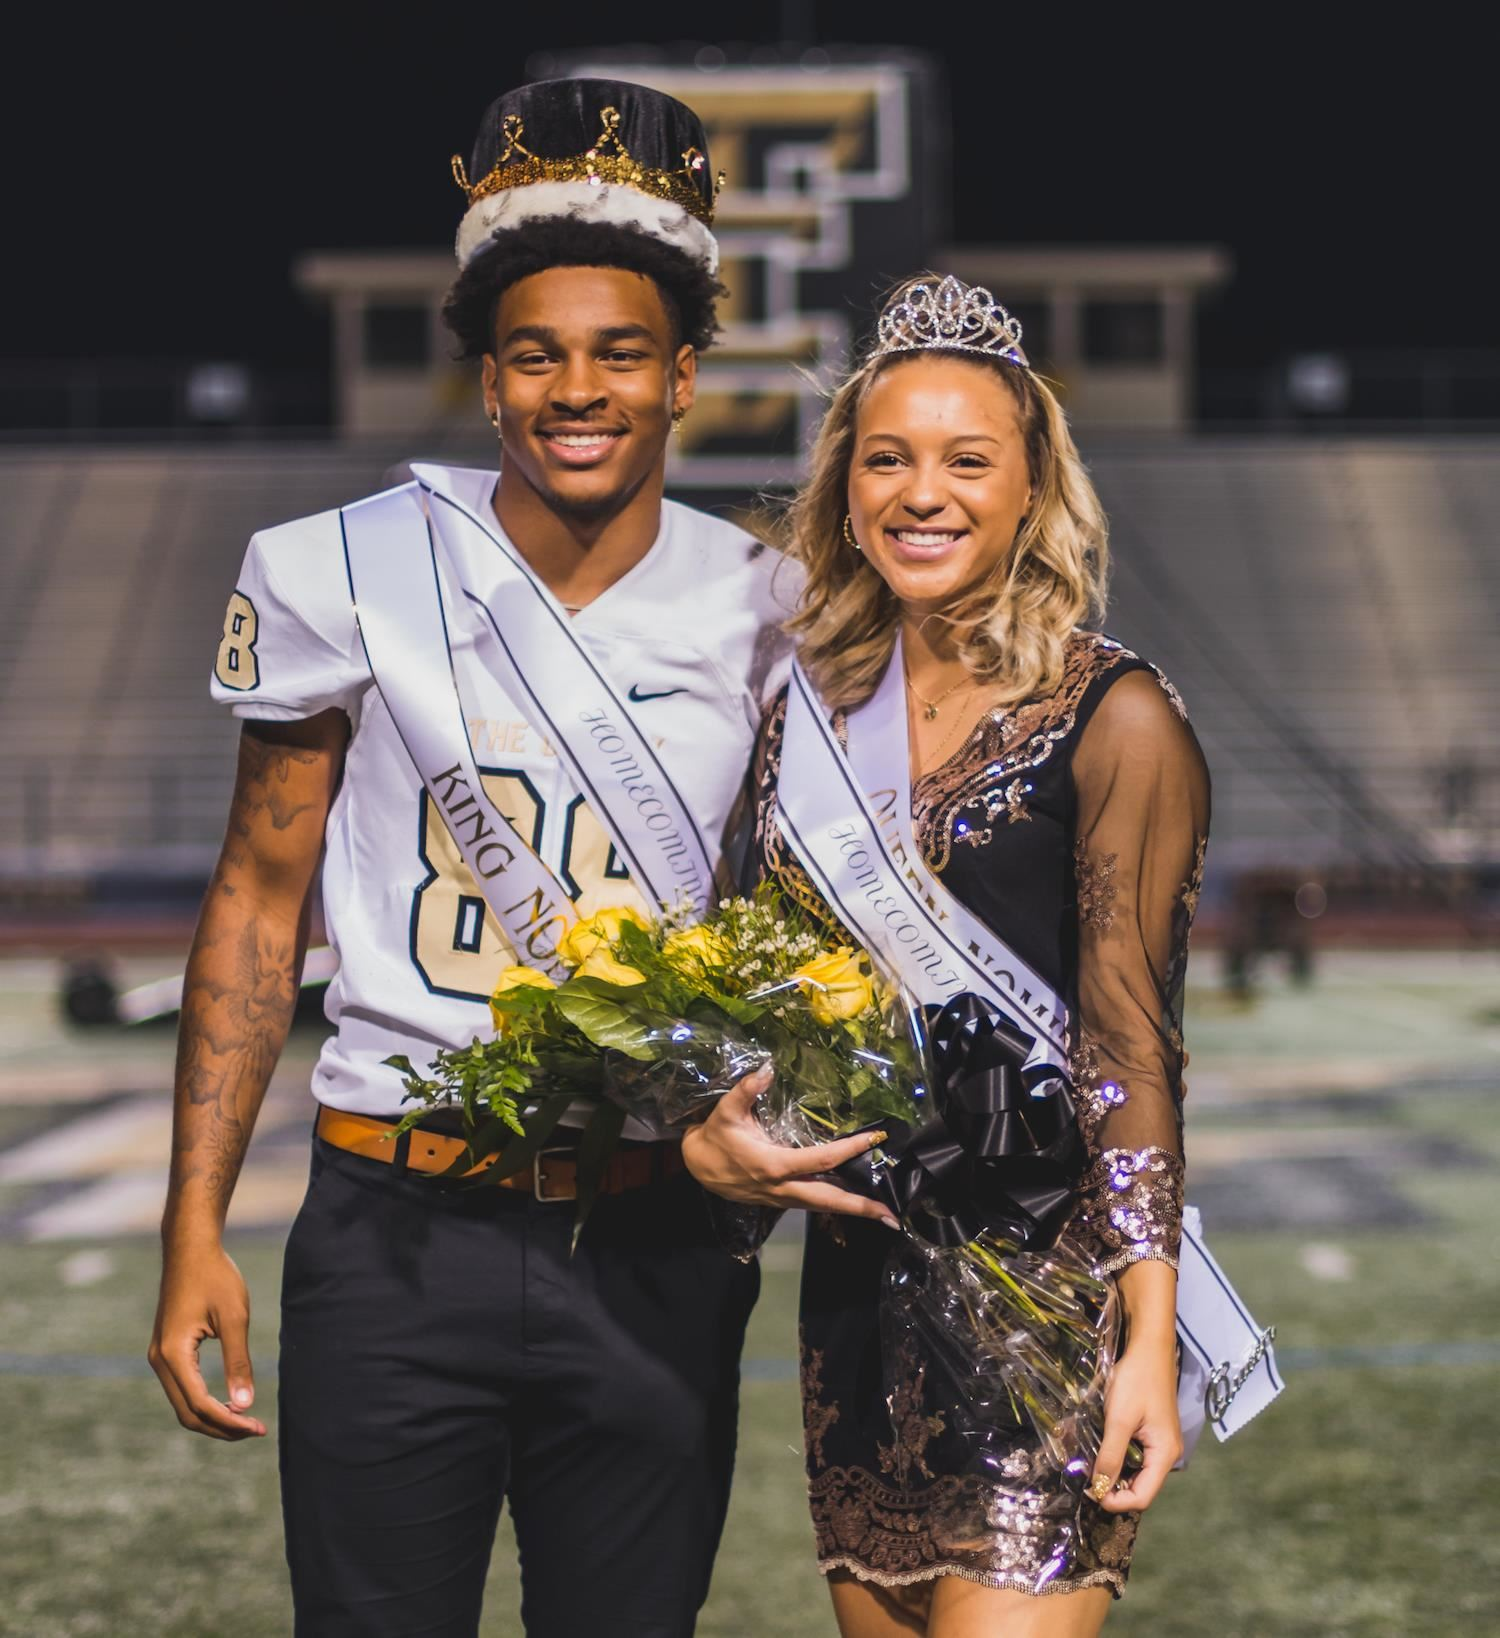 TCHS Homecoming king and queen